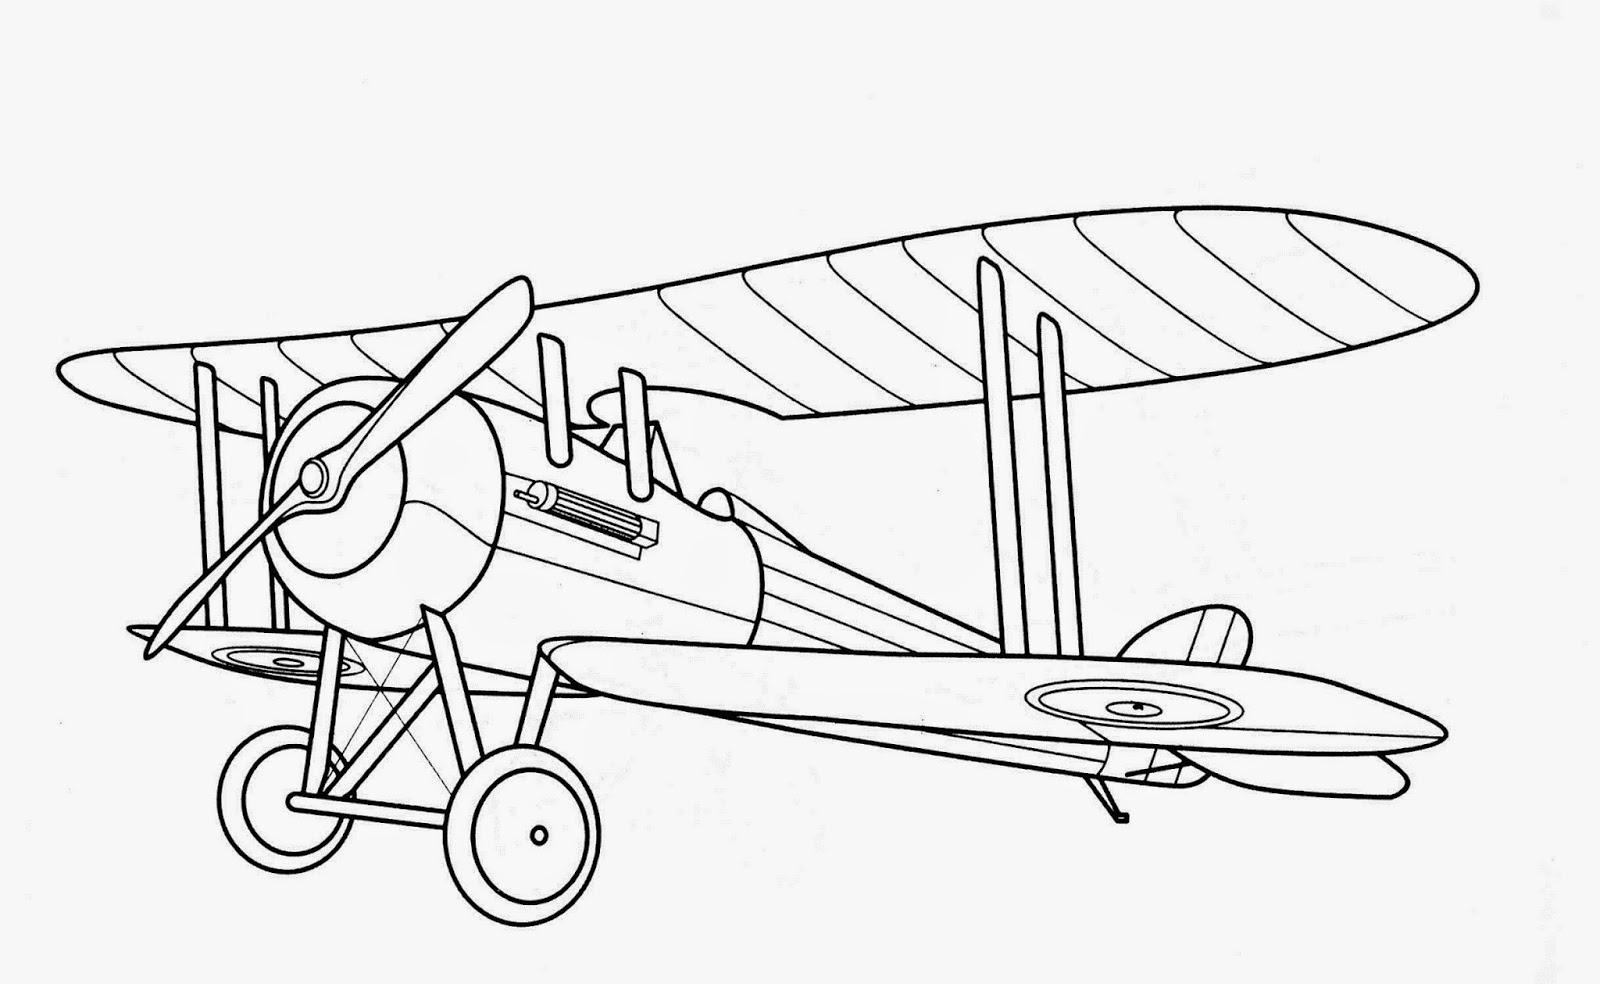 firefighter coloring page - disney planes coloring drawing free